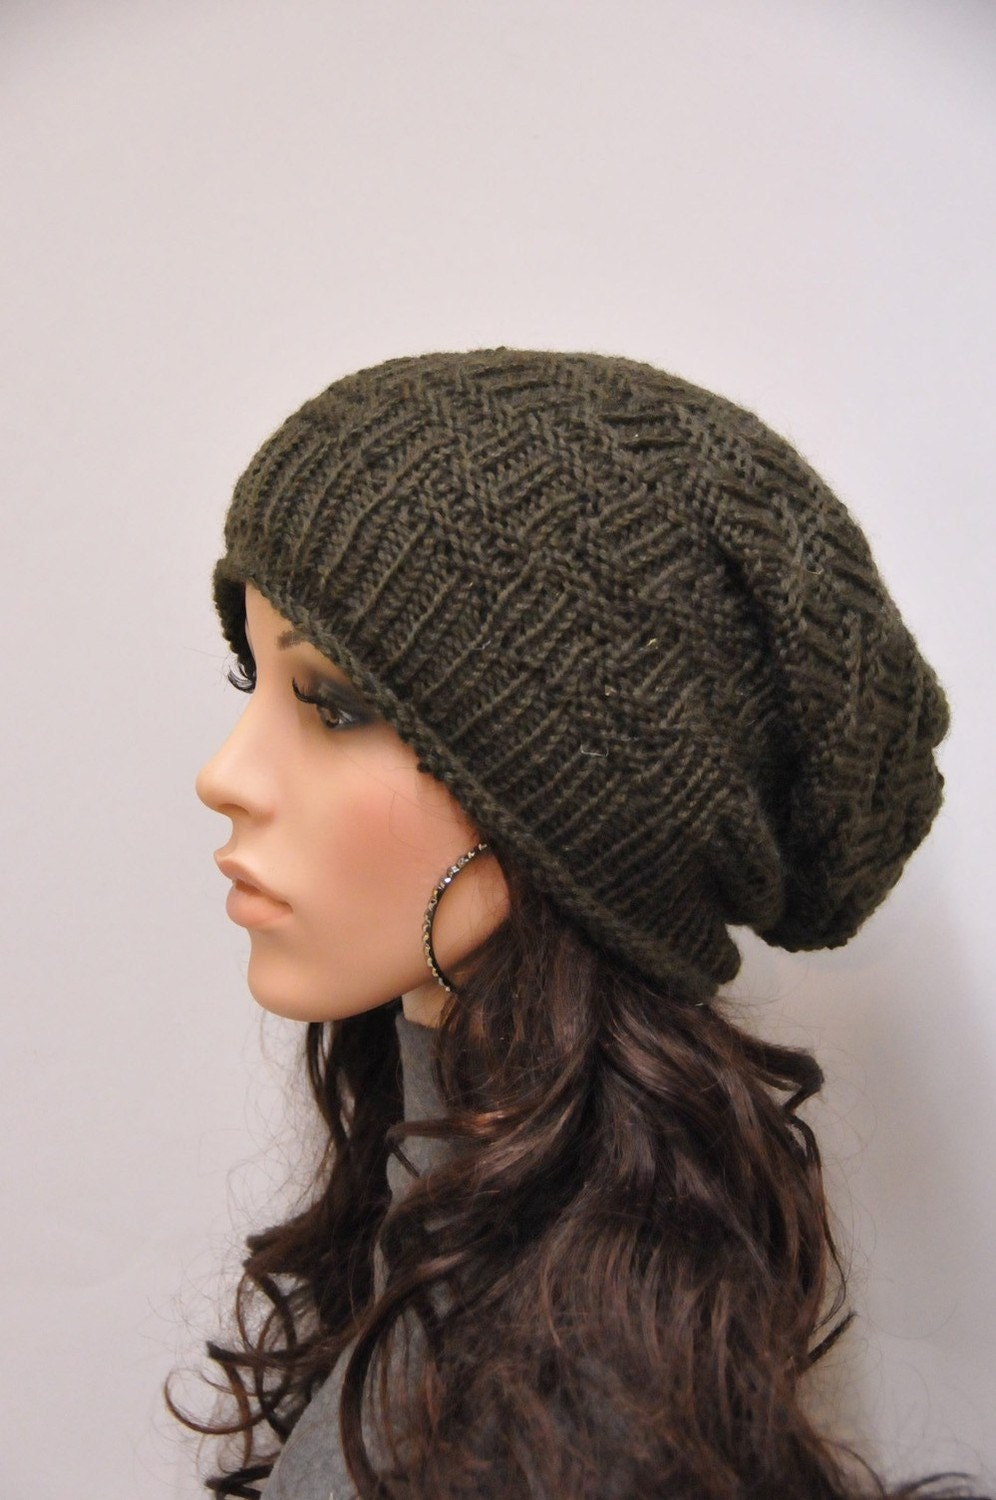 You searched for: knit wool hat! Etsy is the home to thousands of handmade, vintage, and one-of-a-kind products and gifts related to your search. No matter what you're looking for or where you are in the world, our global marketplace of sellers can help you find unique and affordable options. Let's get started!